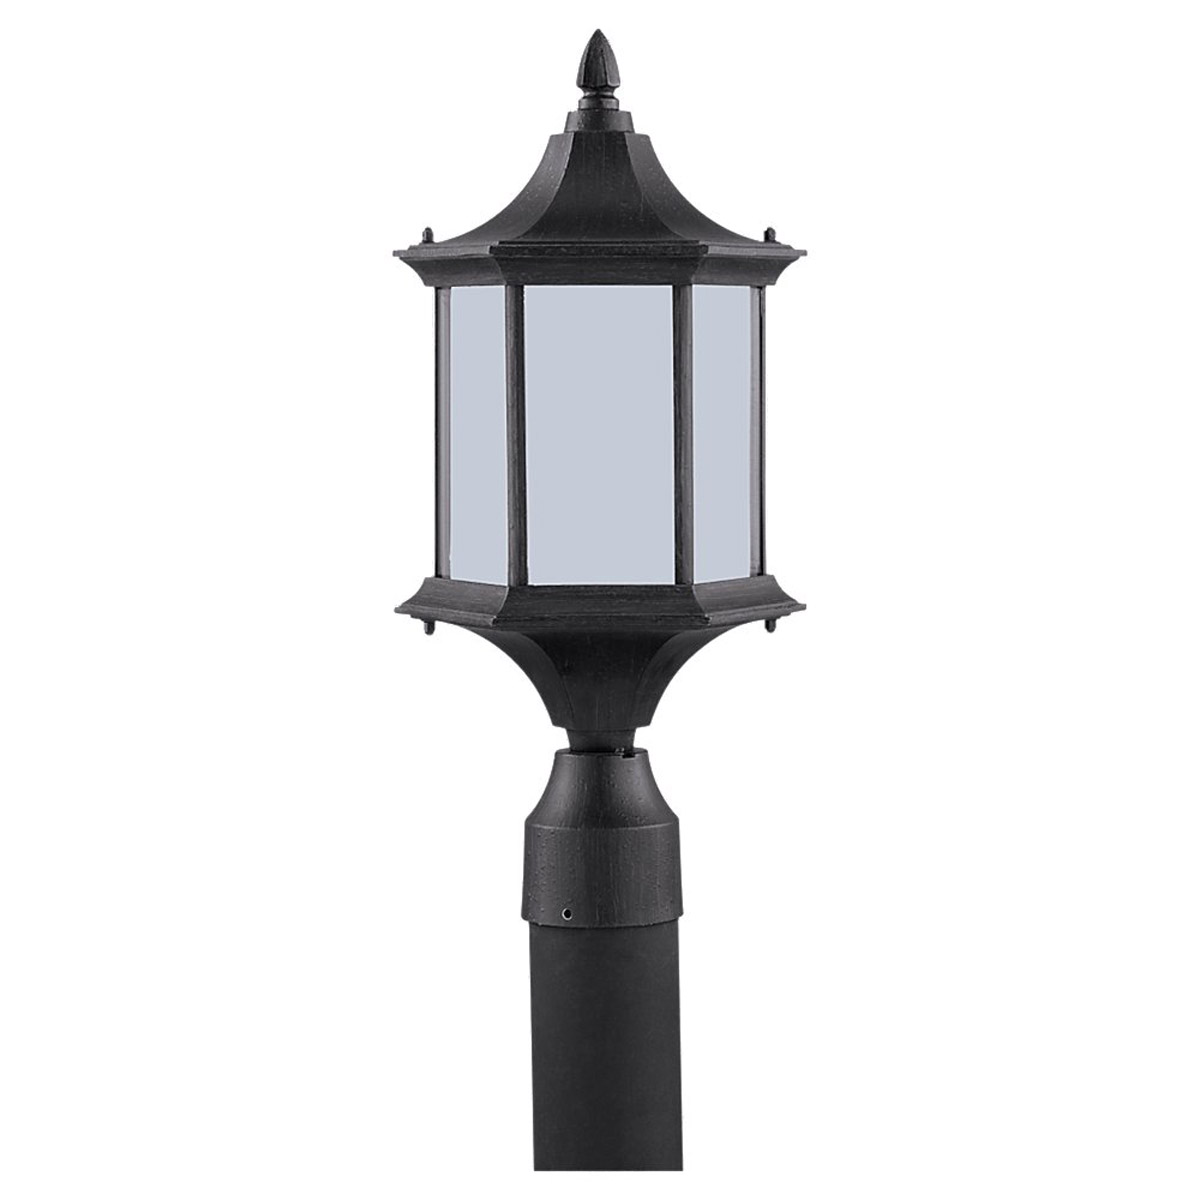 Sea Gull Lighting Ardsley Court 1 Light Outdoor Post Lantern in Textured Rust Patina 89236BL-08